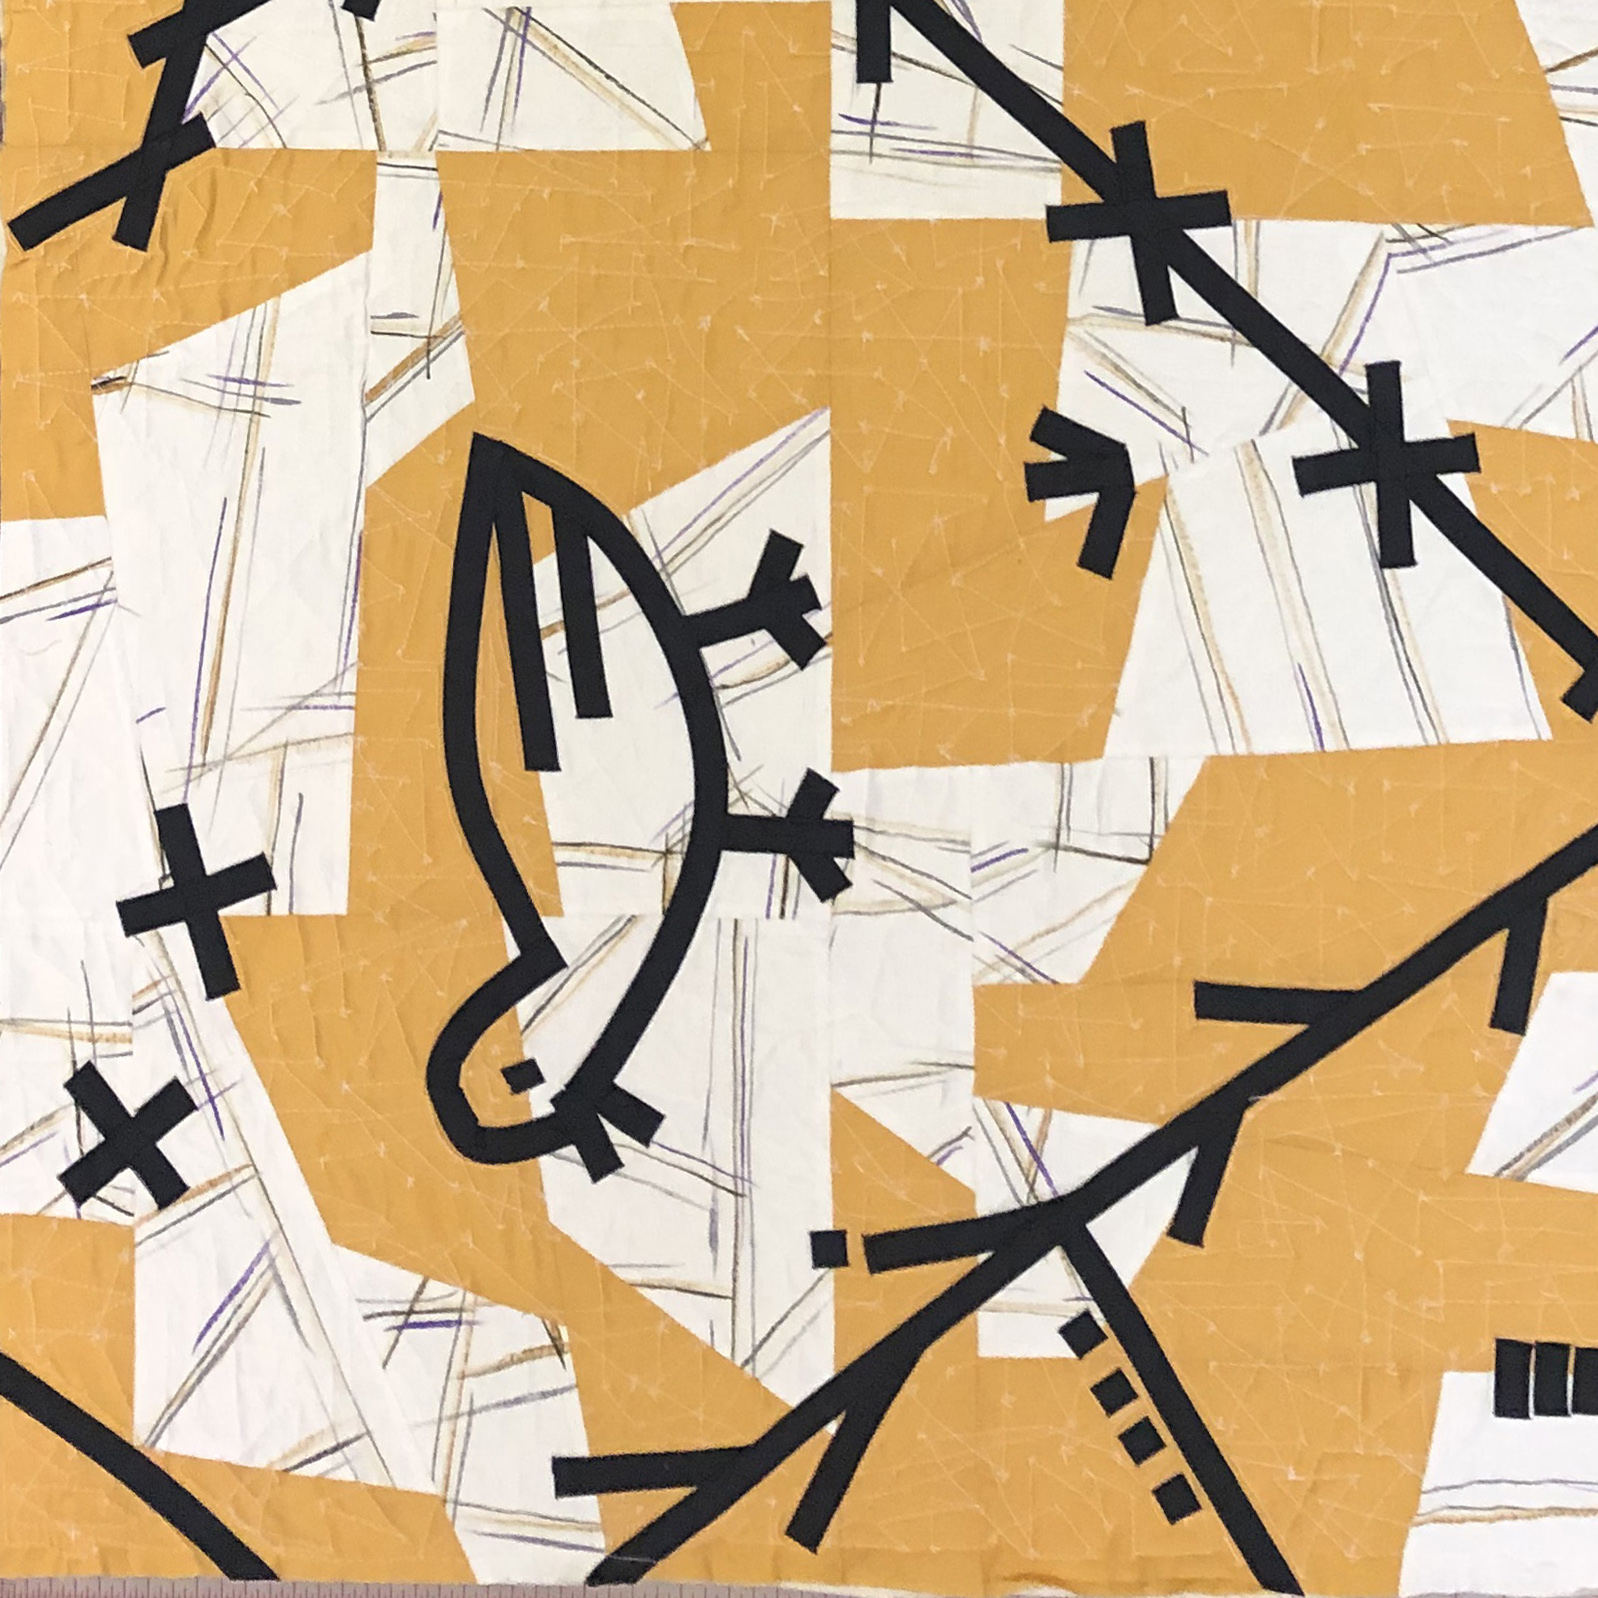 Birde_and_Joe_1_detail.jpg